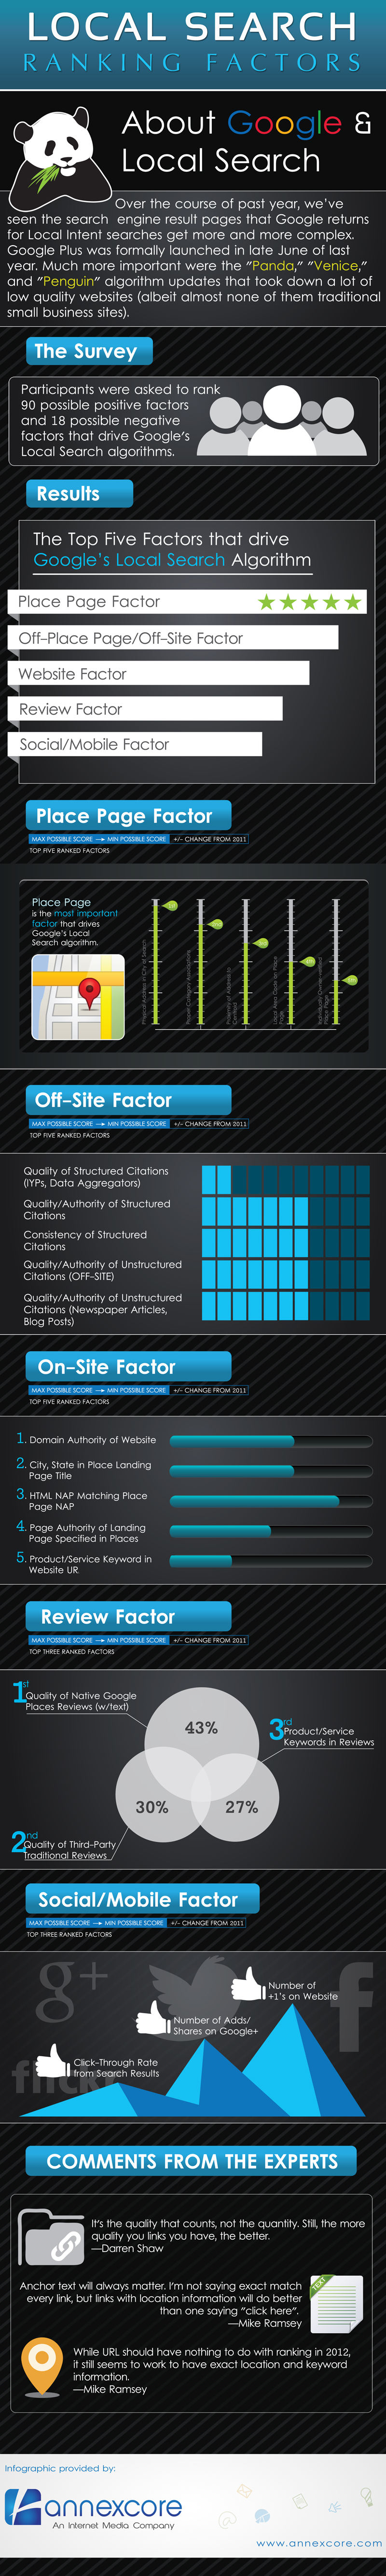 Local-Search-Ranking-Infographic-AnnexCore